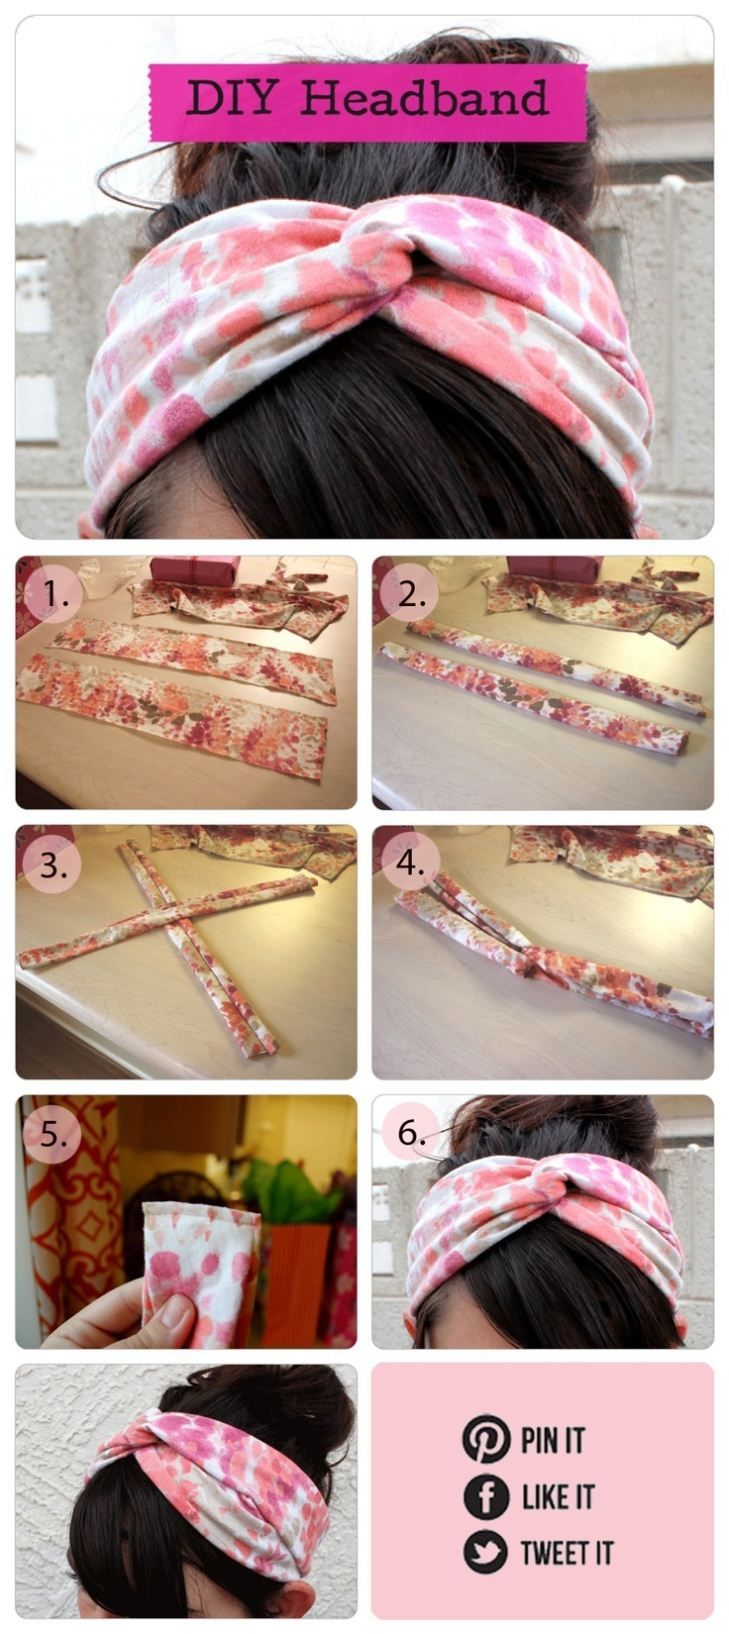 Saifou images | Welcome to SaiFou – Inspiring images